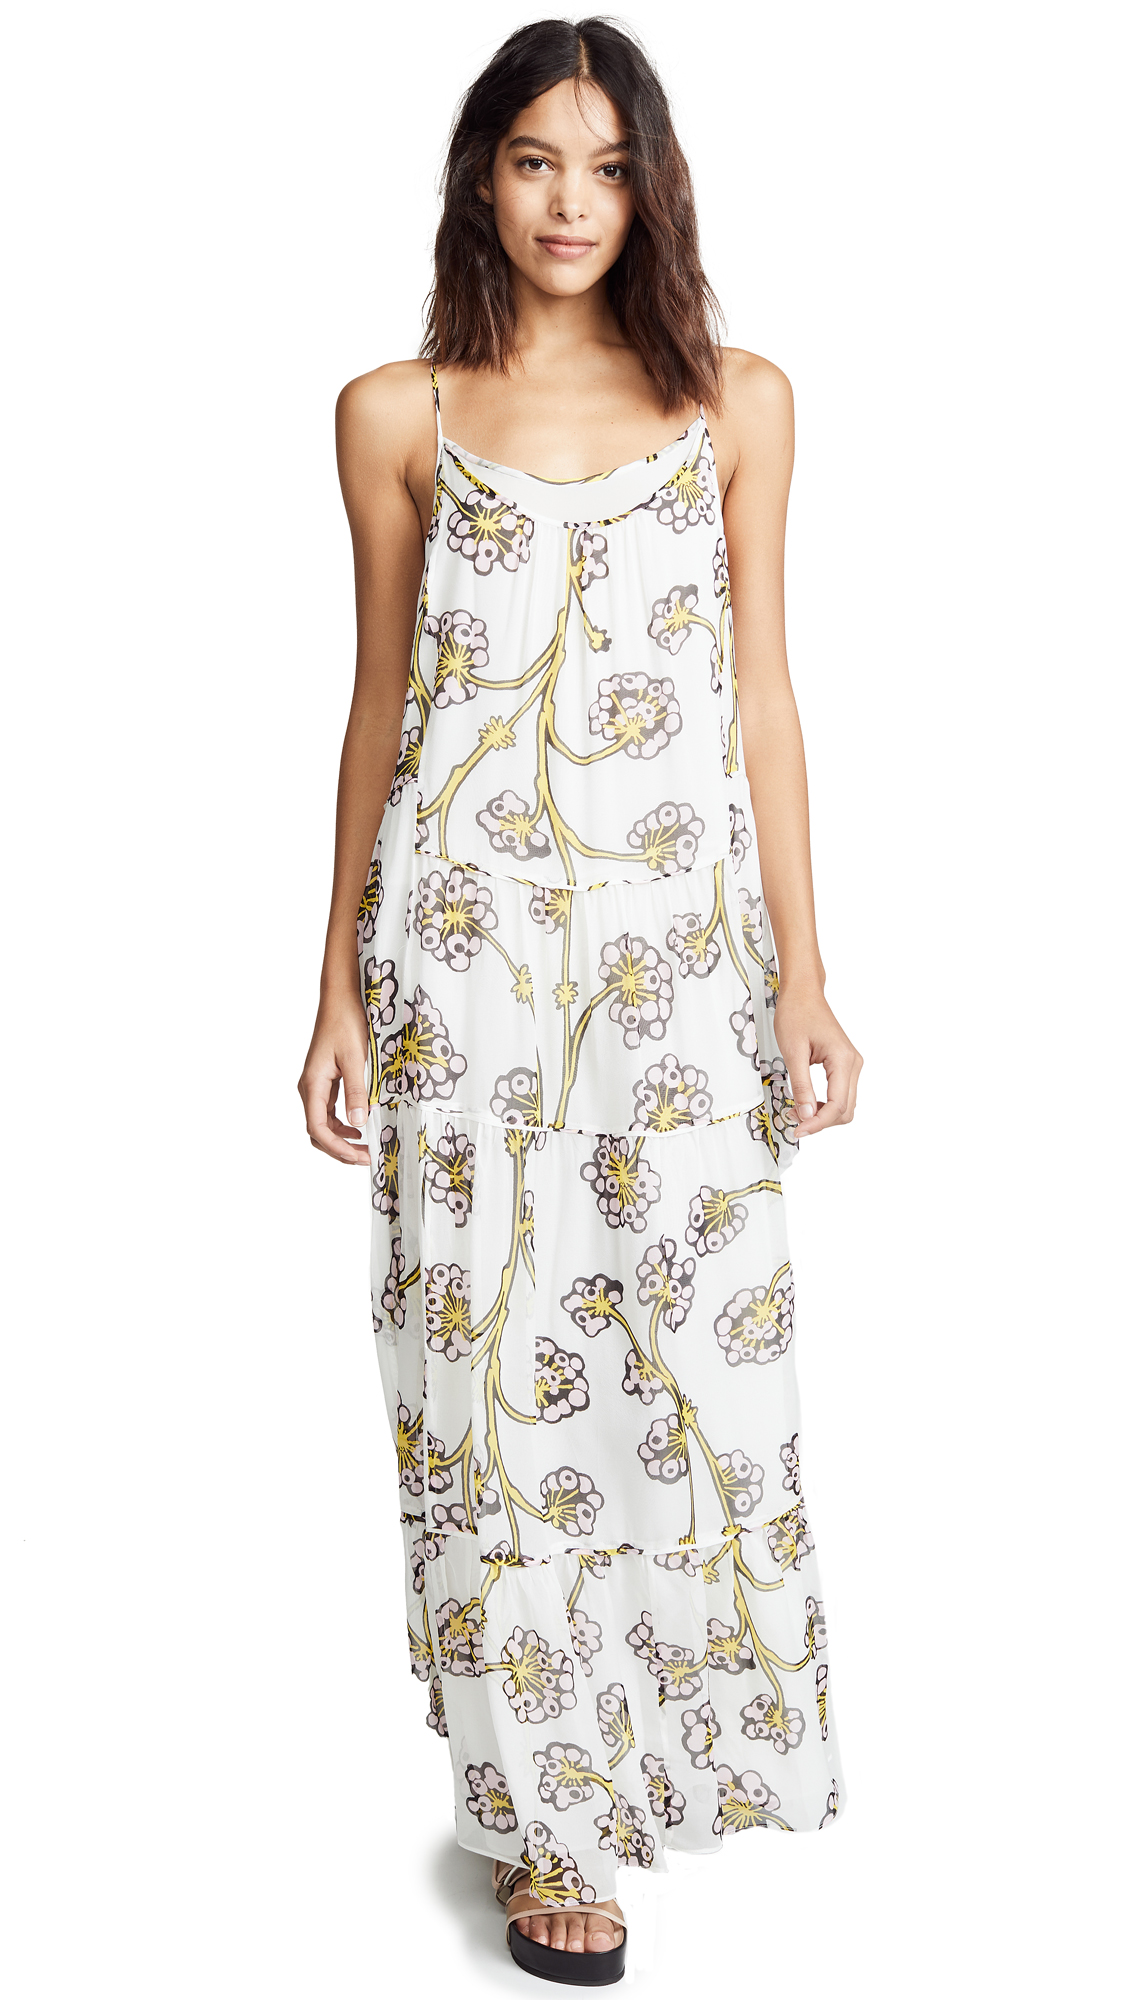 Diane von Furstenberg Baylee Maxi Dress - Dragon Berry Giant Ivory